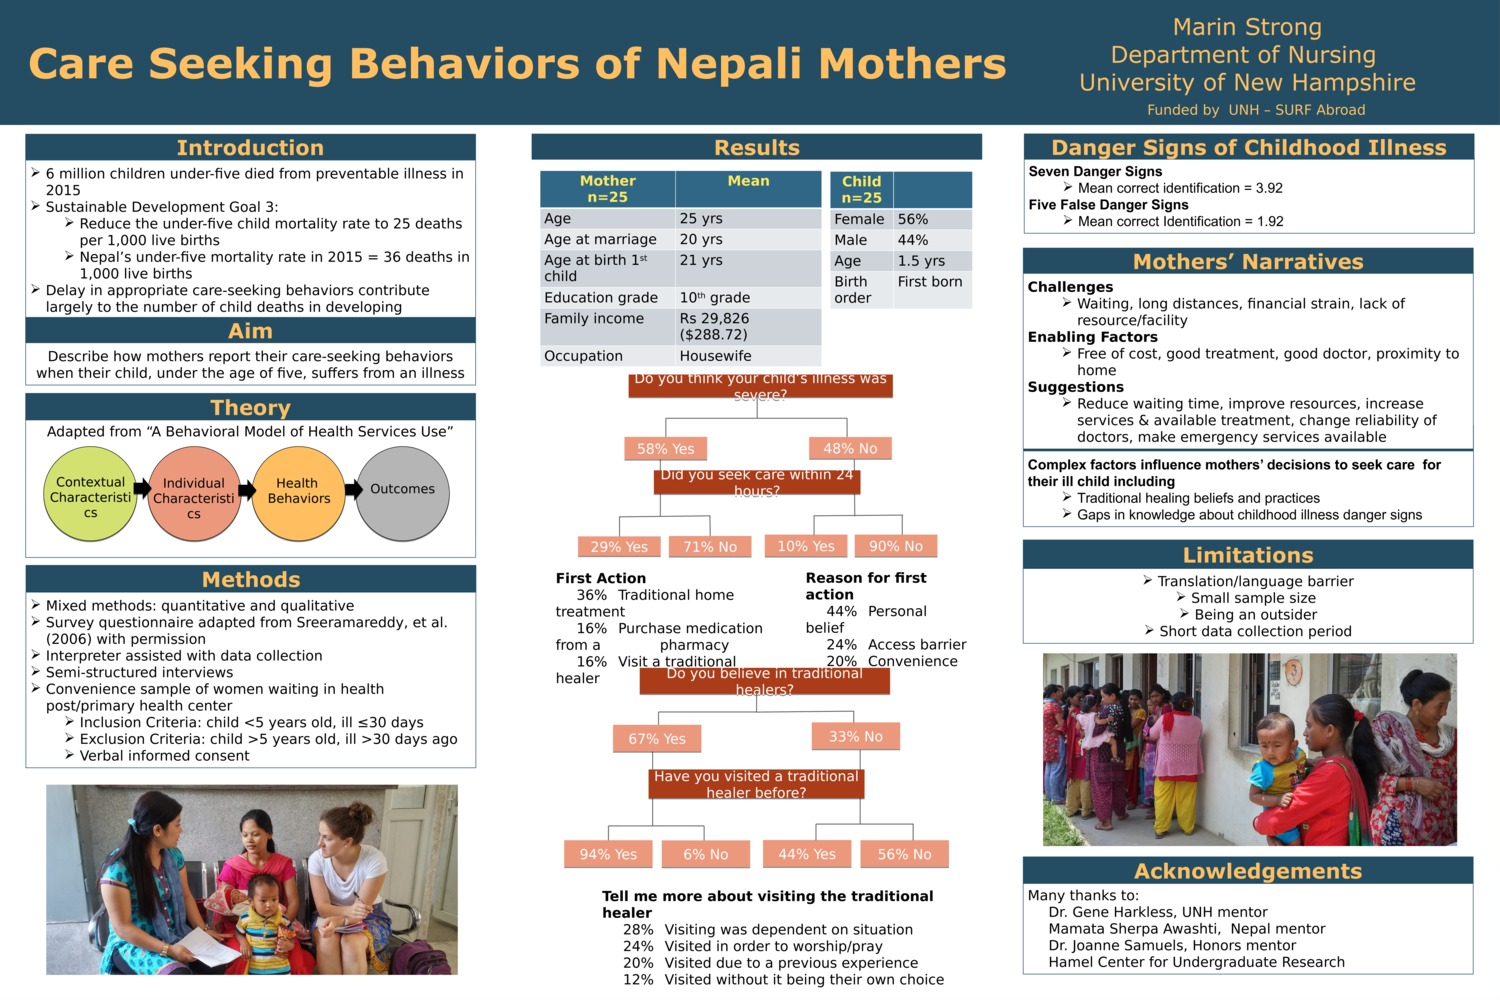 Care Seeking Behaviors Of Nepali Mothers by mas2015